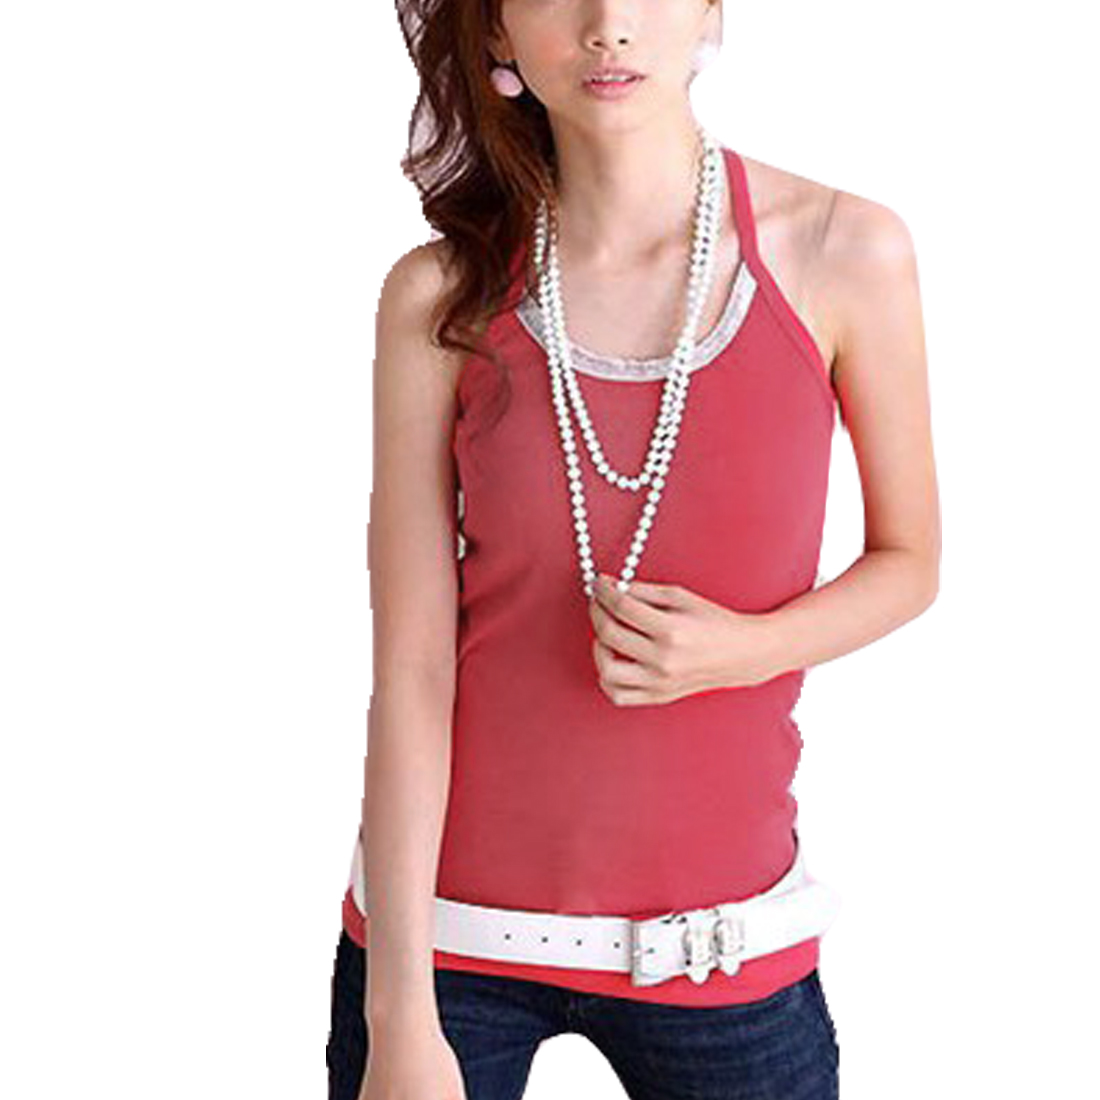 XS Ladies Pullover Sleeveless Spaghetti Strapes Tank Top Watermelon Red